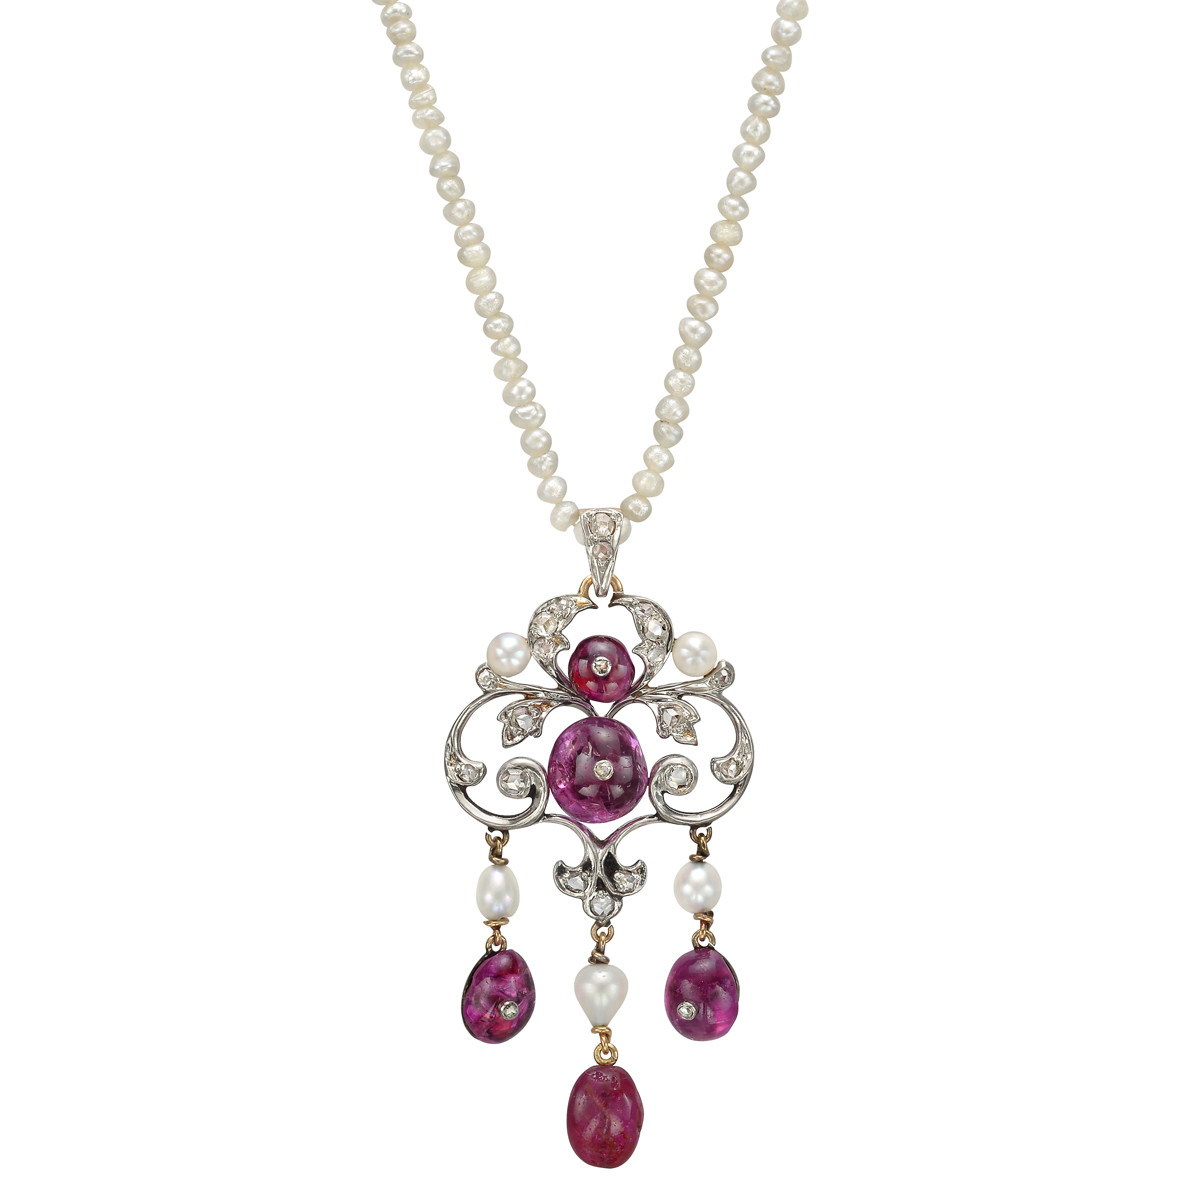 Antique Natural Pearl & Ruby Pendant Necklace